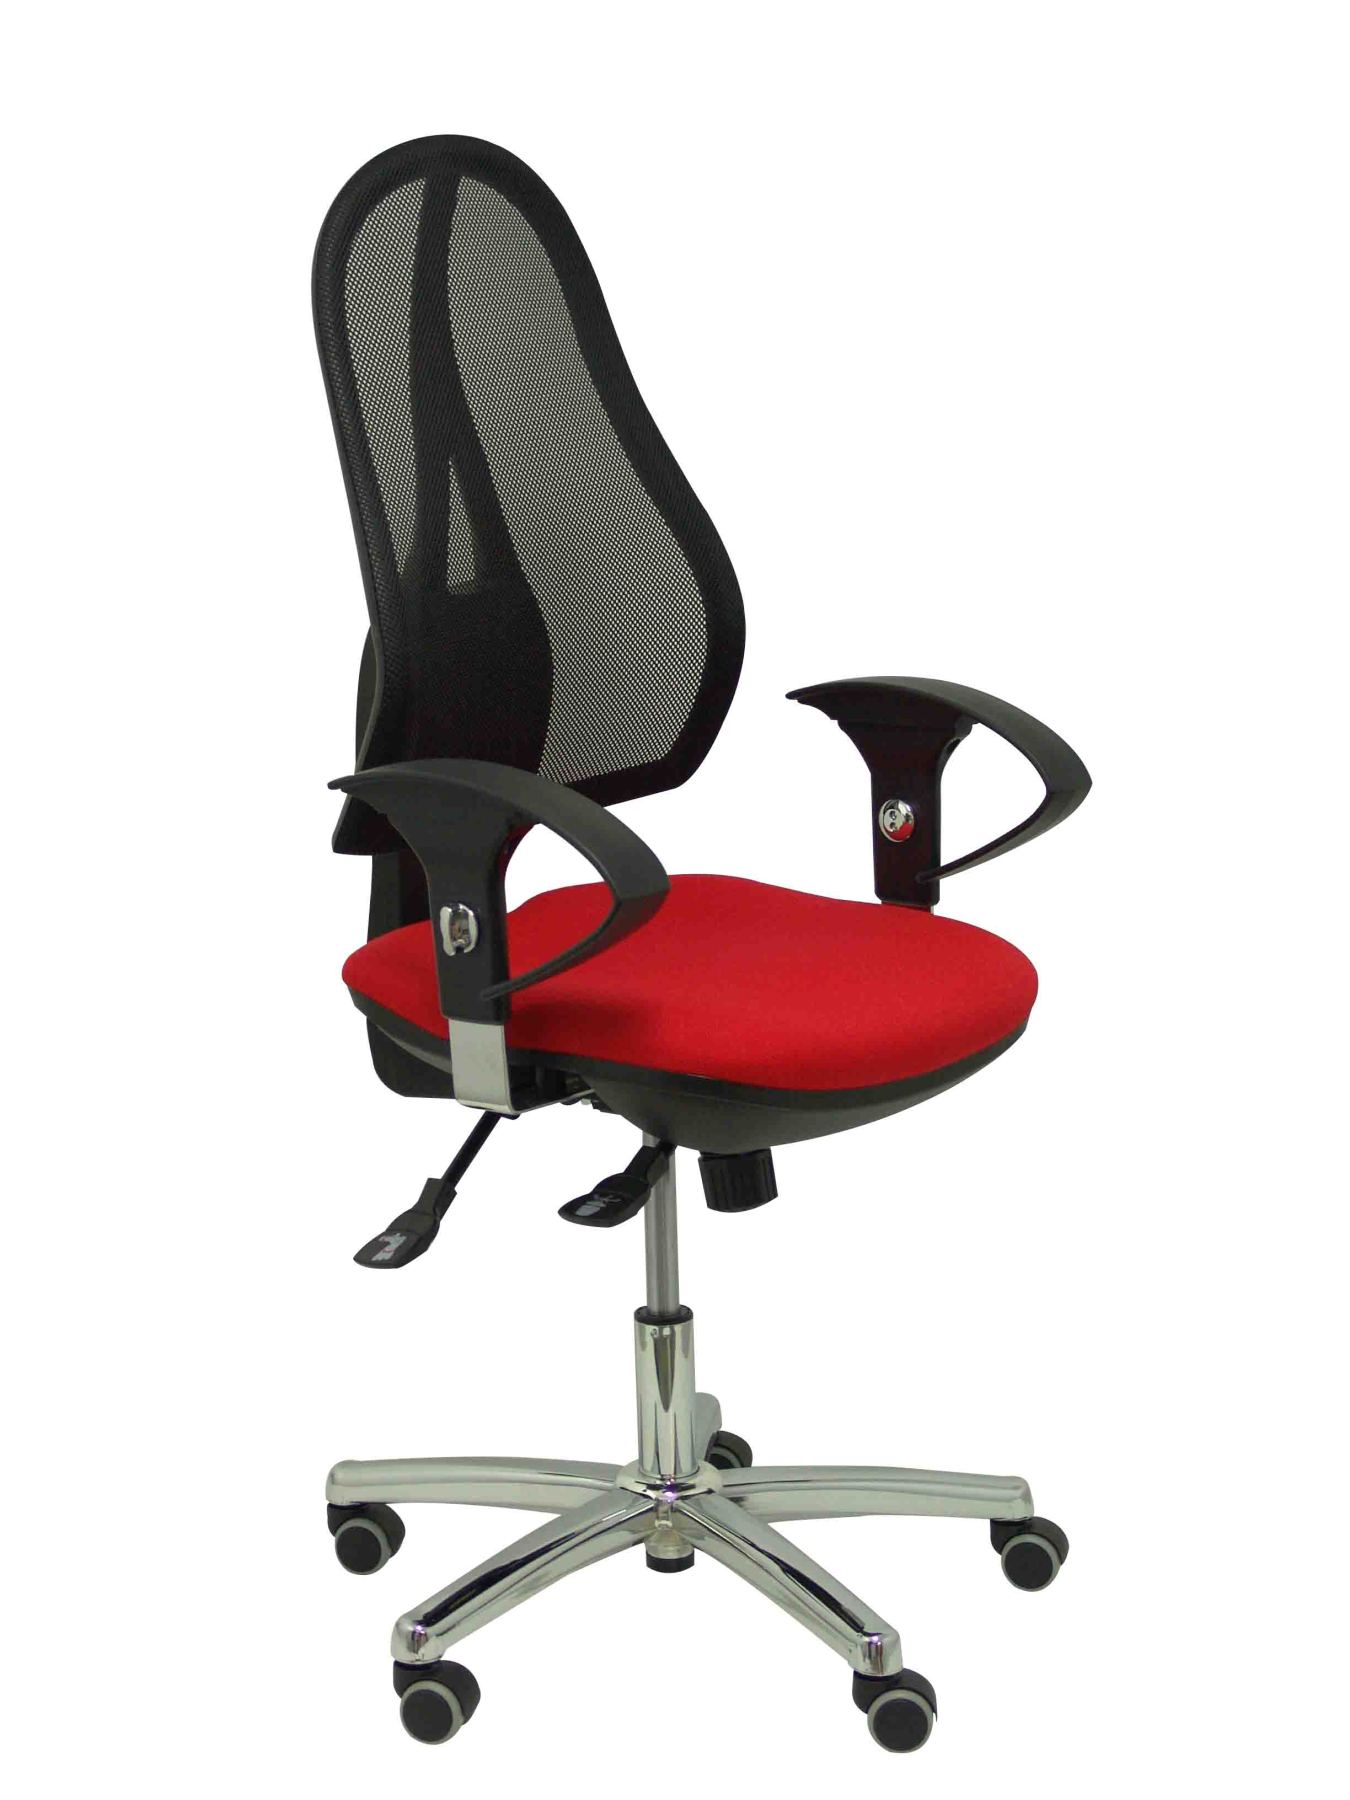 Ergonomic Office Chair With Mechanism Synchro, Arms Adjustable-breathable Mesh Backrest In Black And